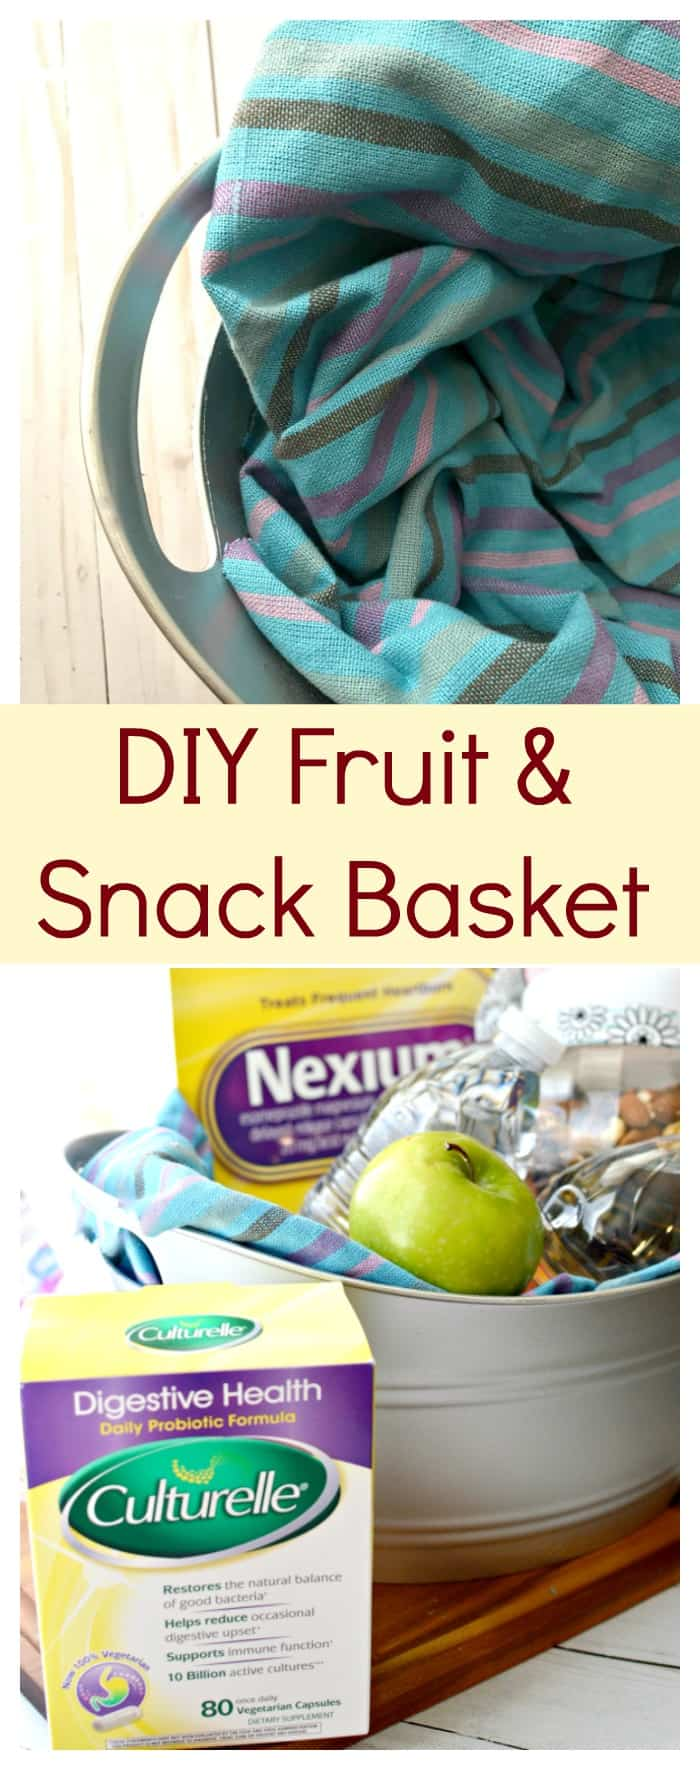 DIY Fruit & Snack Basket